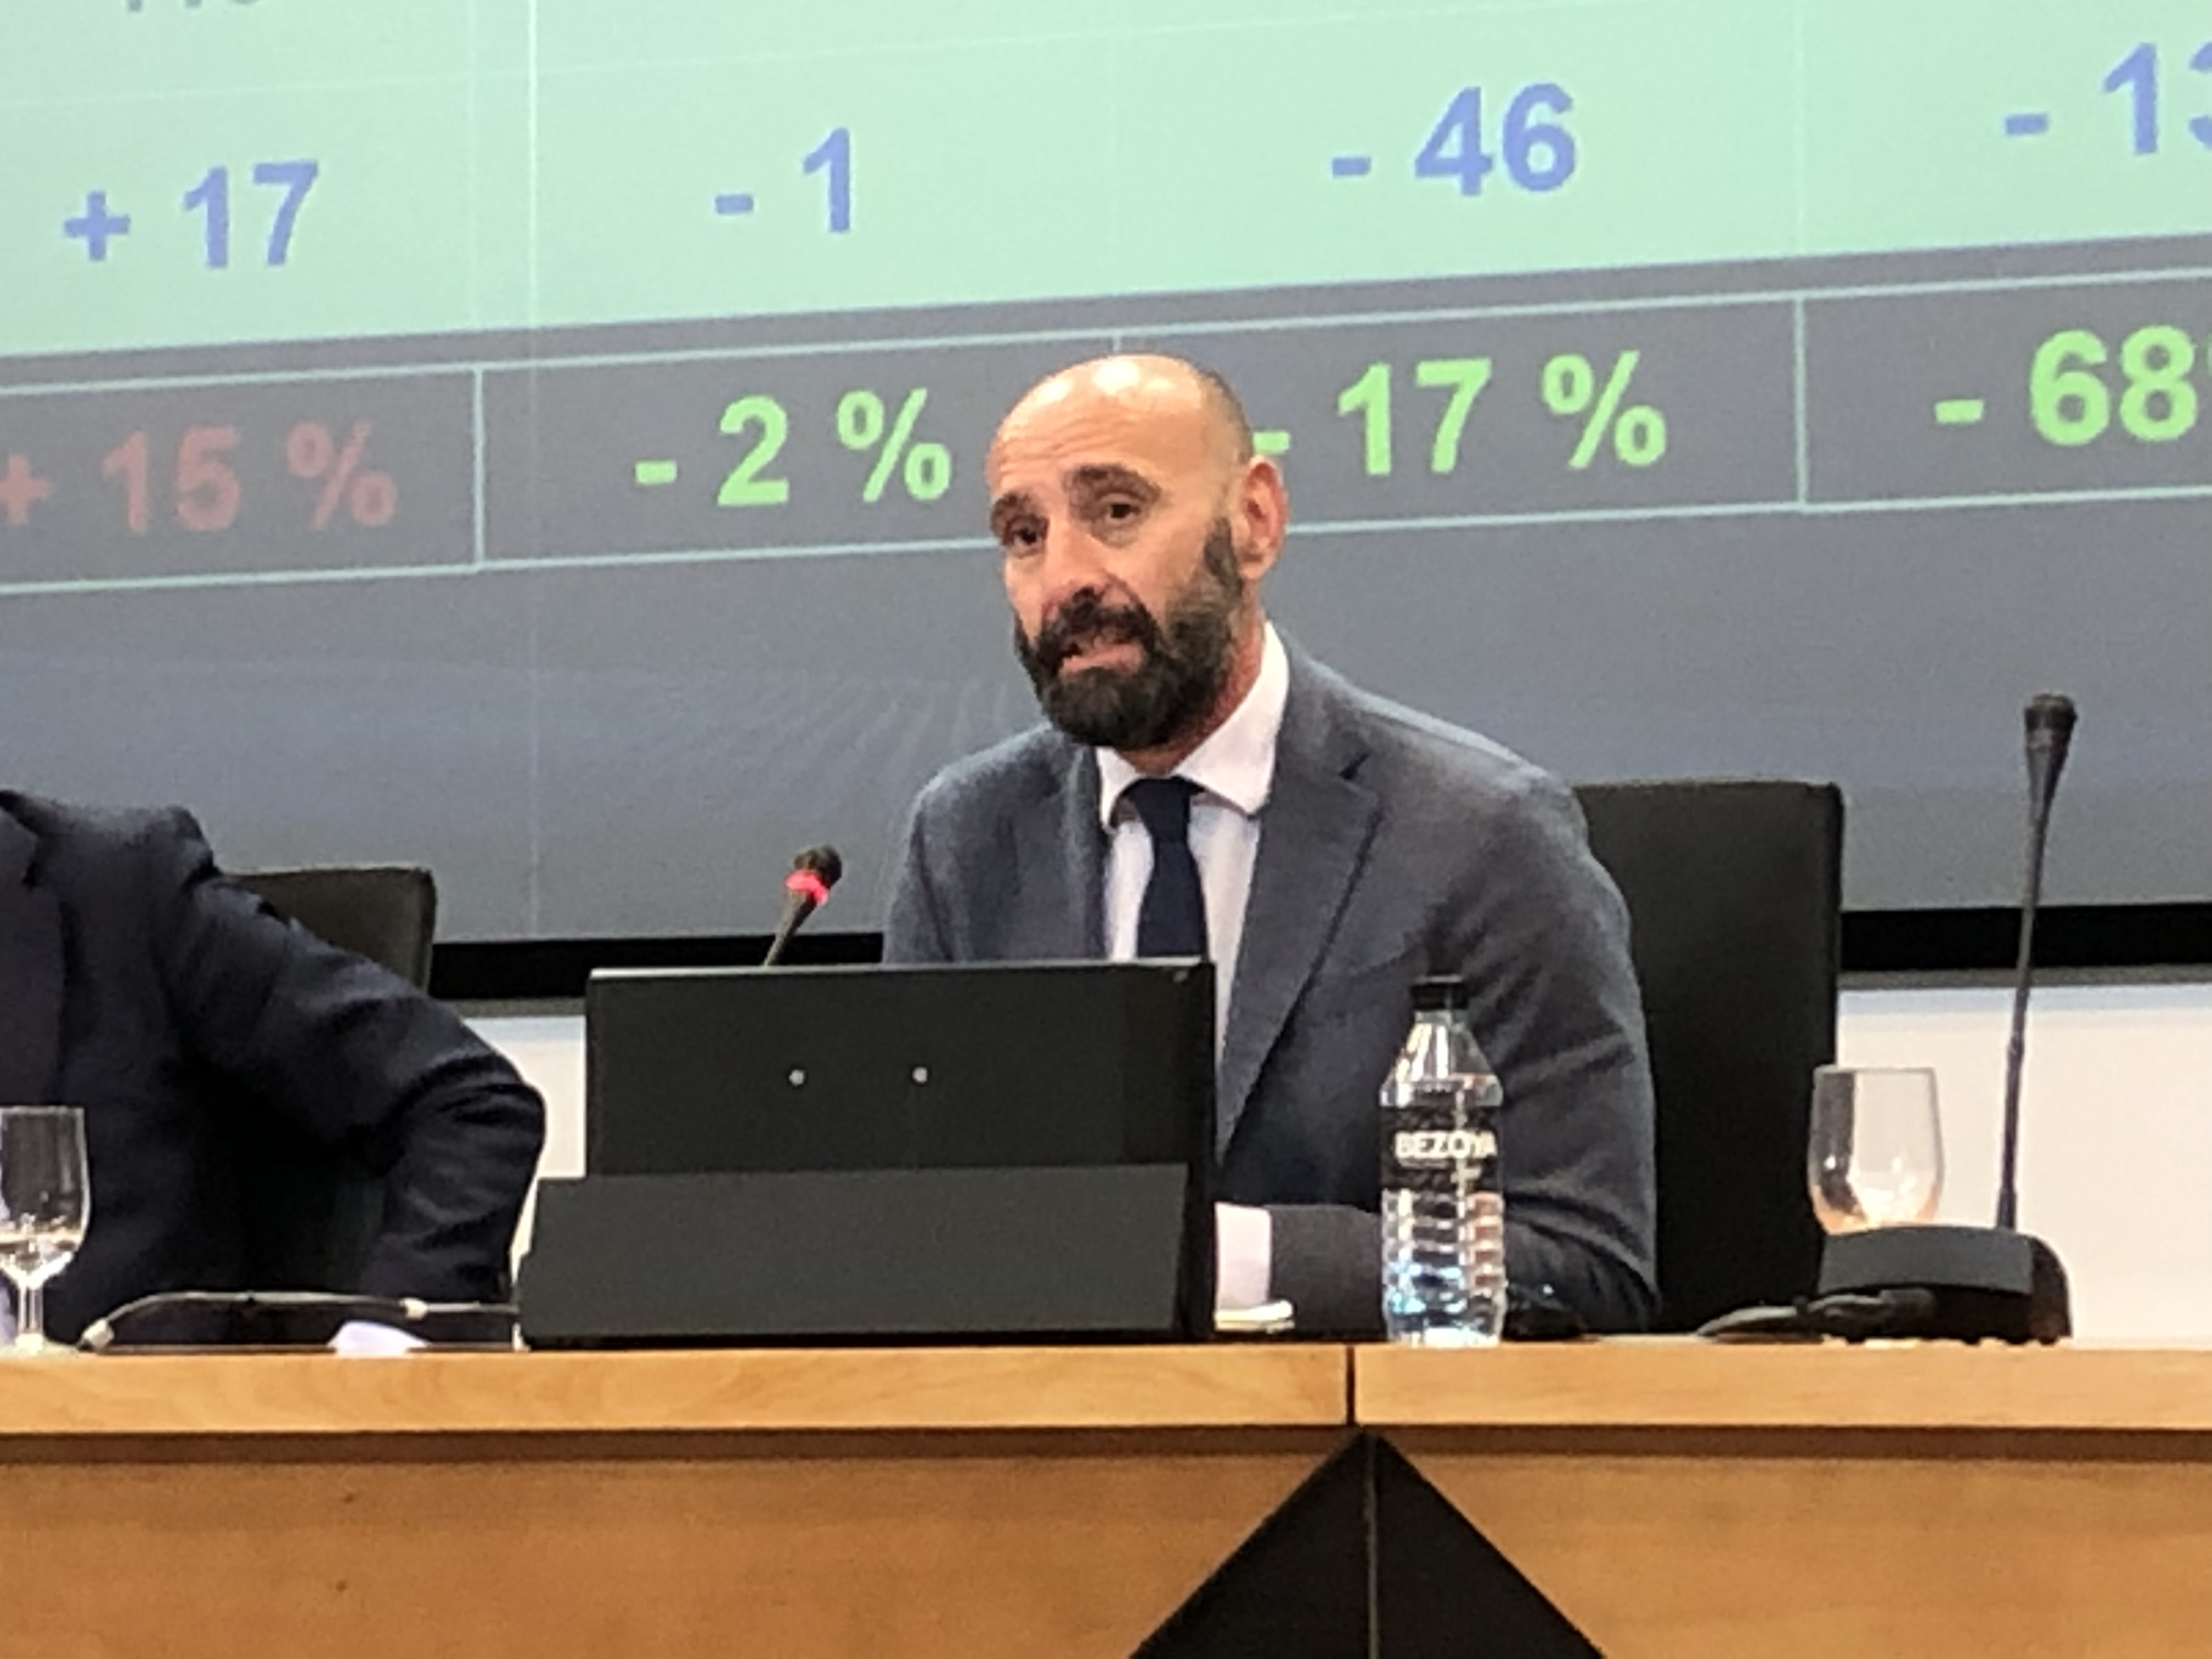 Monchi during his speech